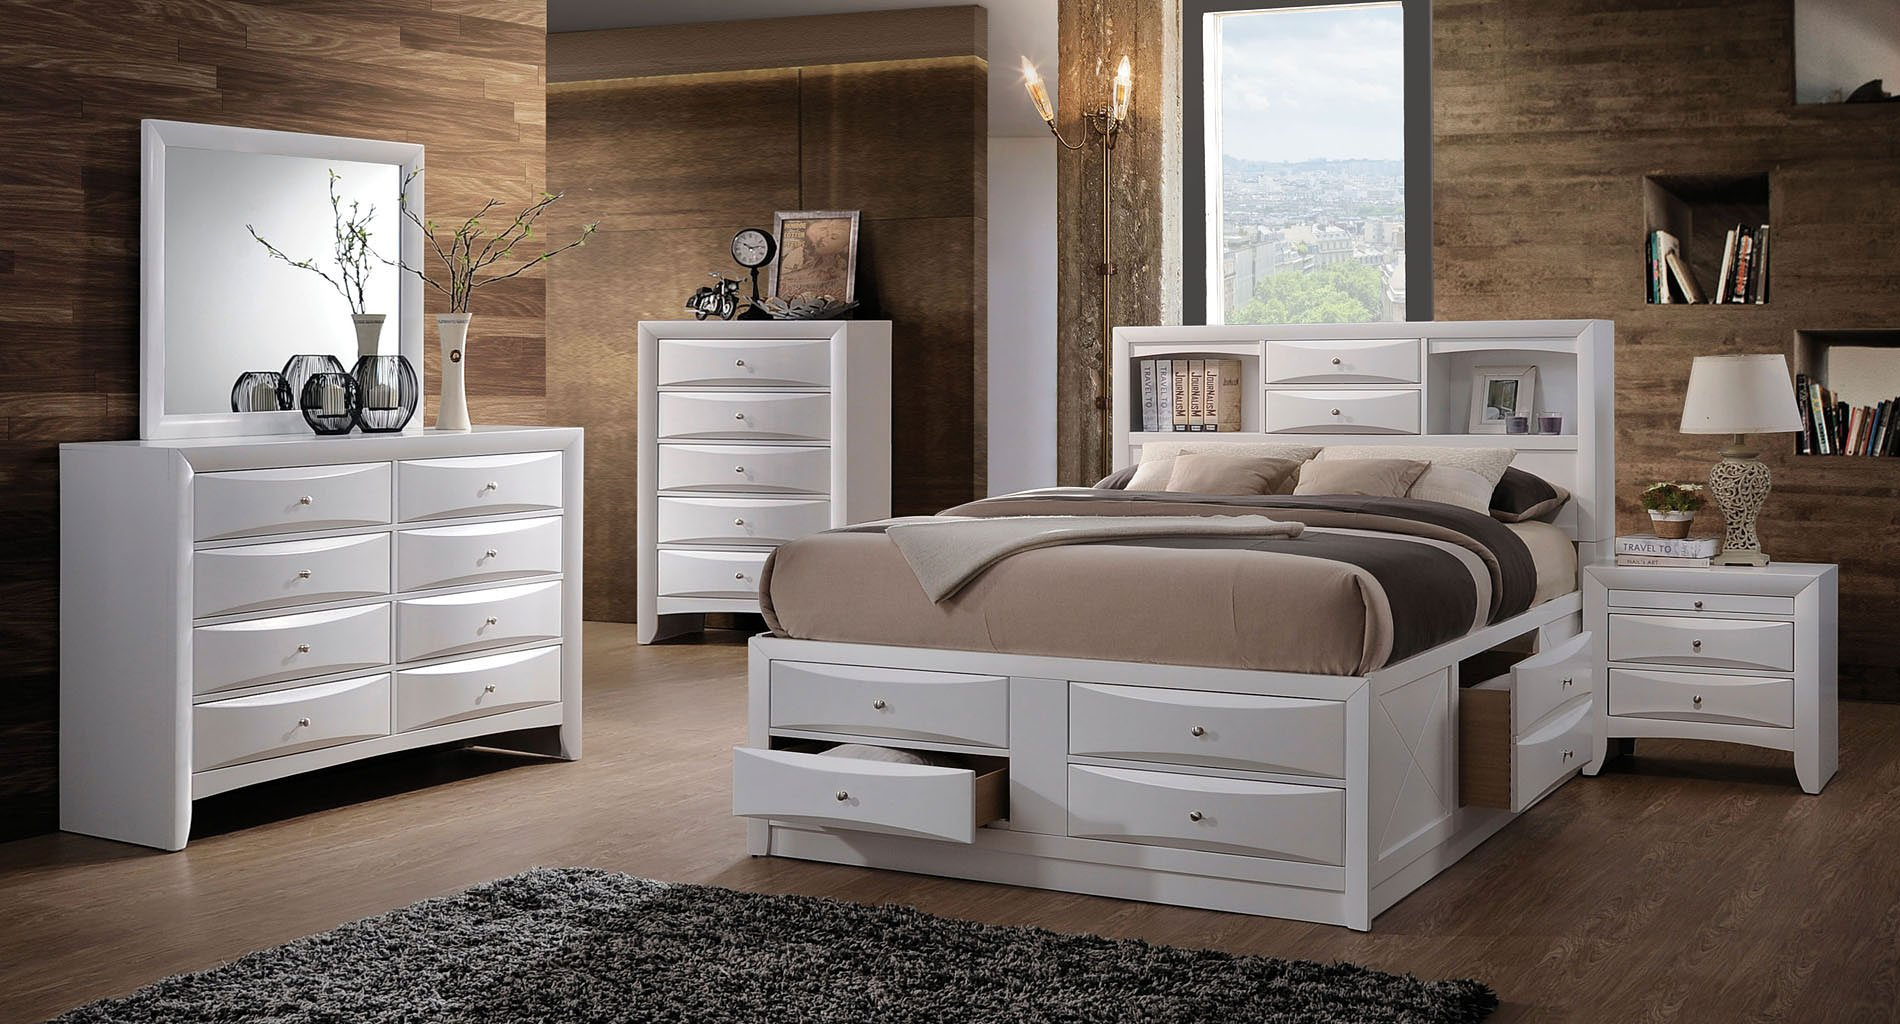 Ireland Bookcase Bedroom Set (White) By Acme Furniture